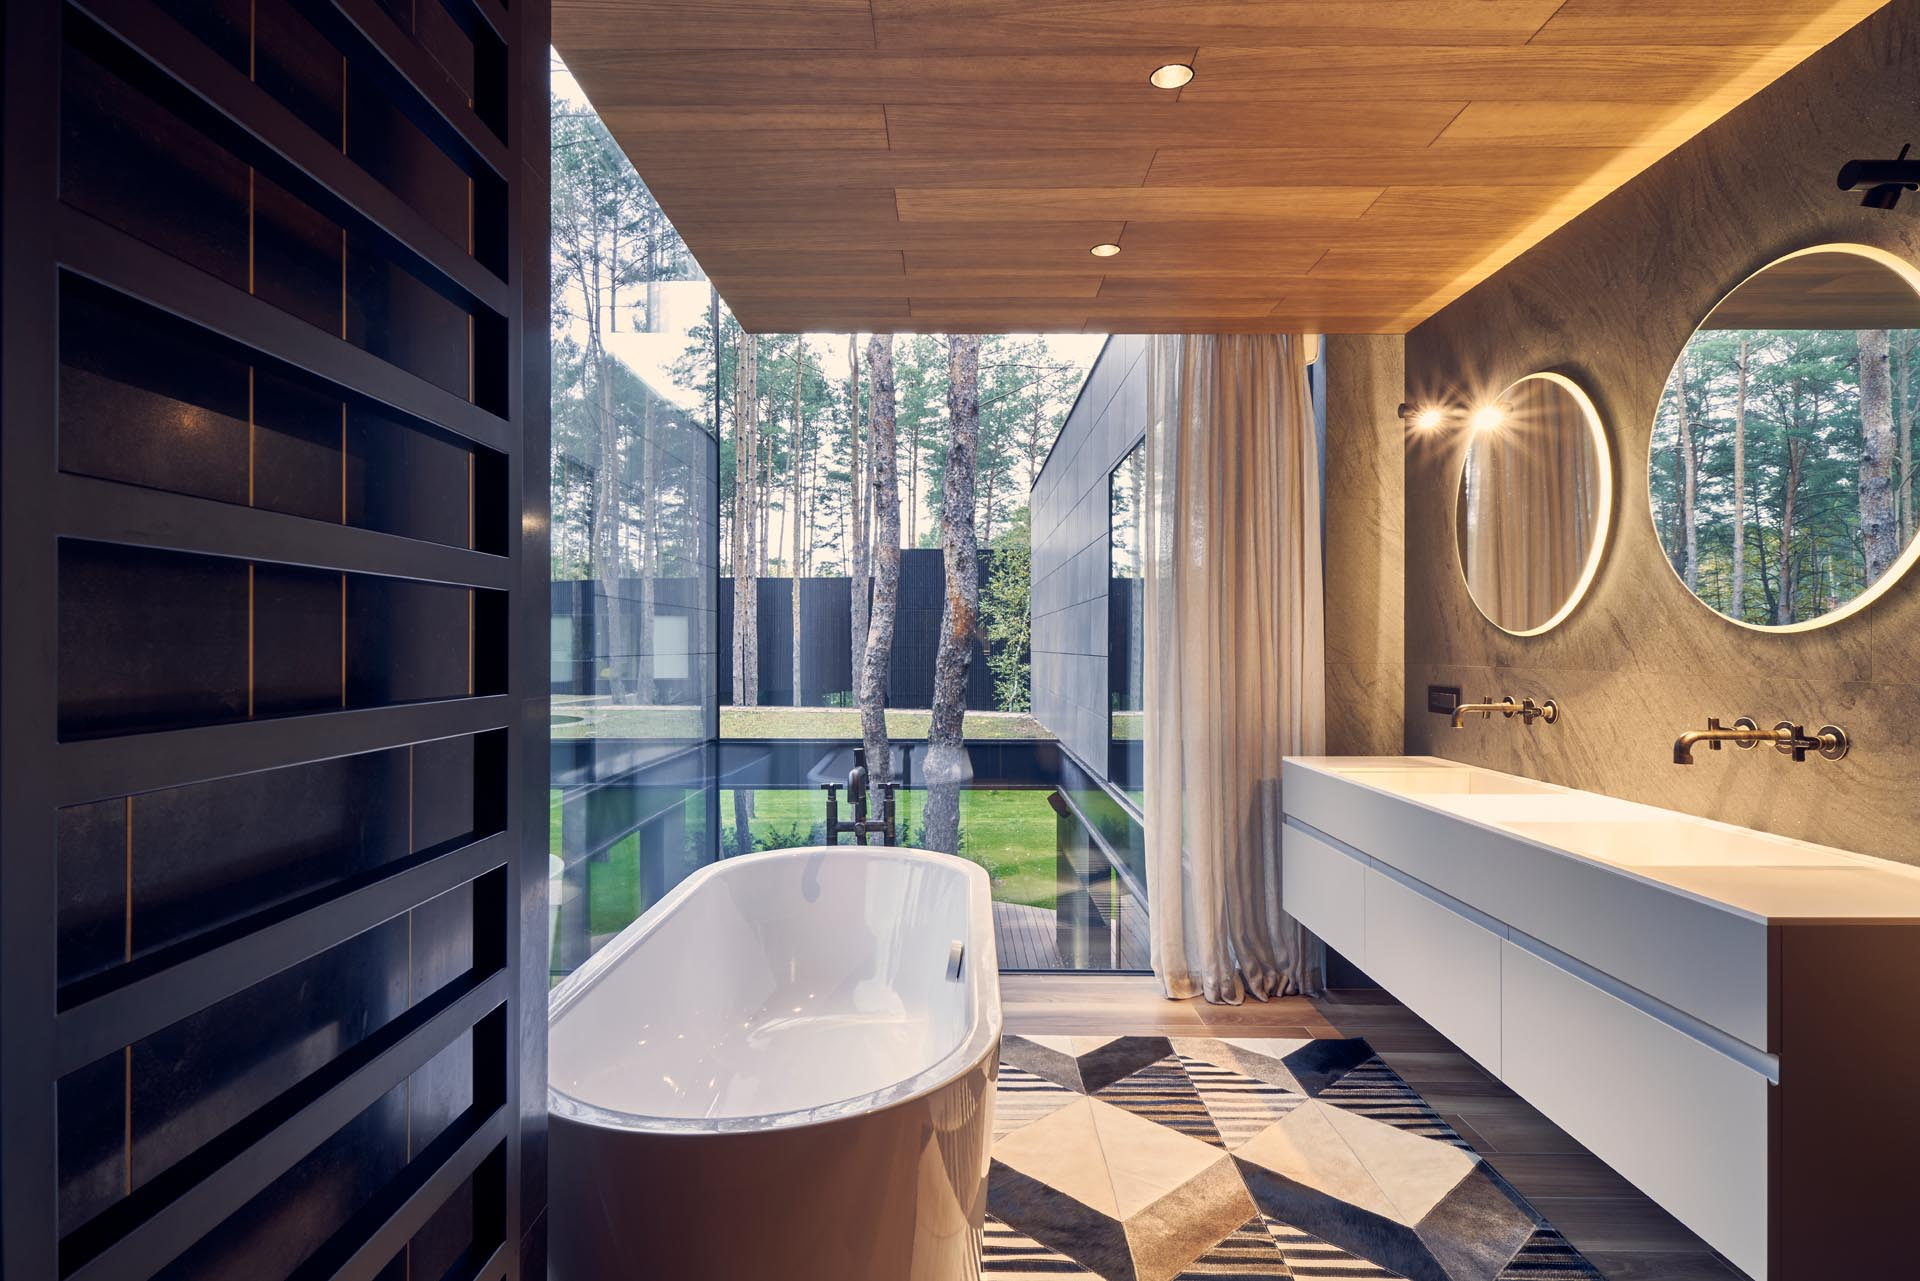 A modern bathroom with corner windows, round mirrors, a wood ceiling, and a floating white vanity with double sinks.